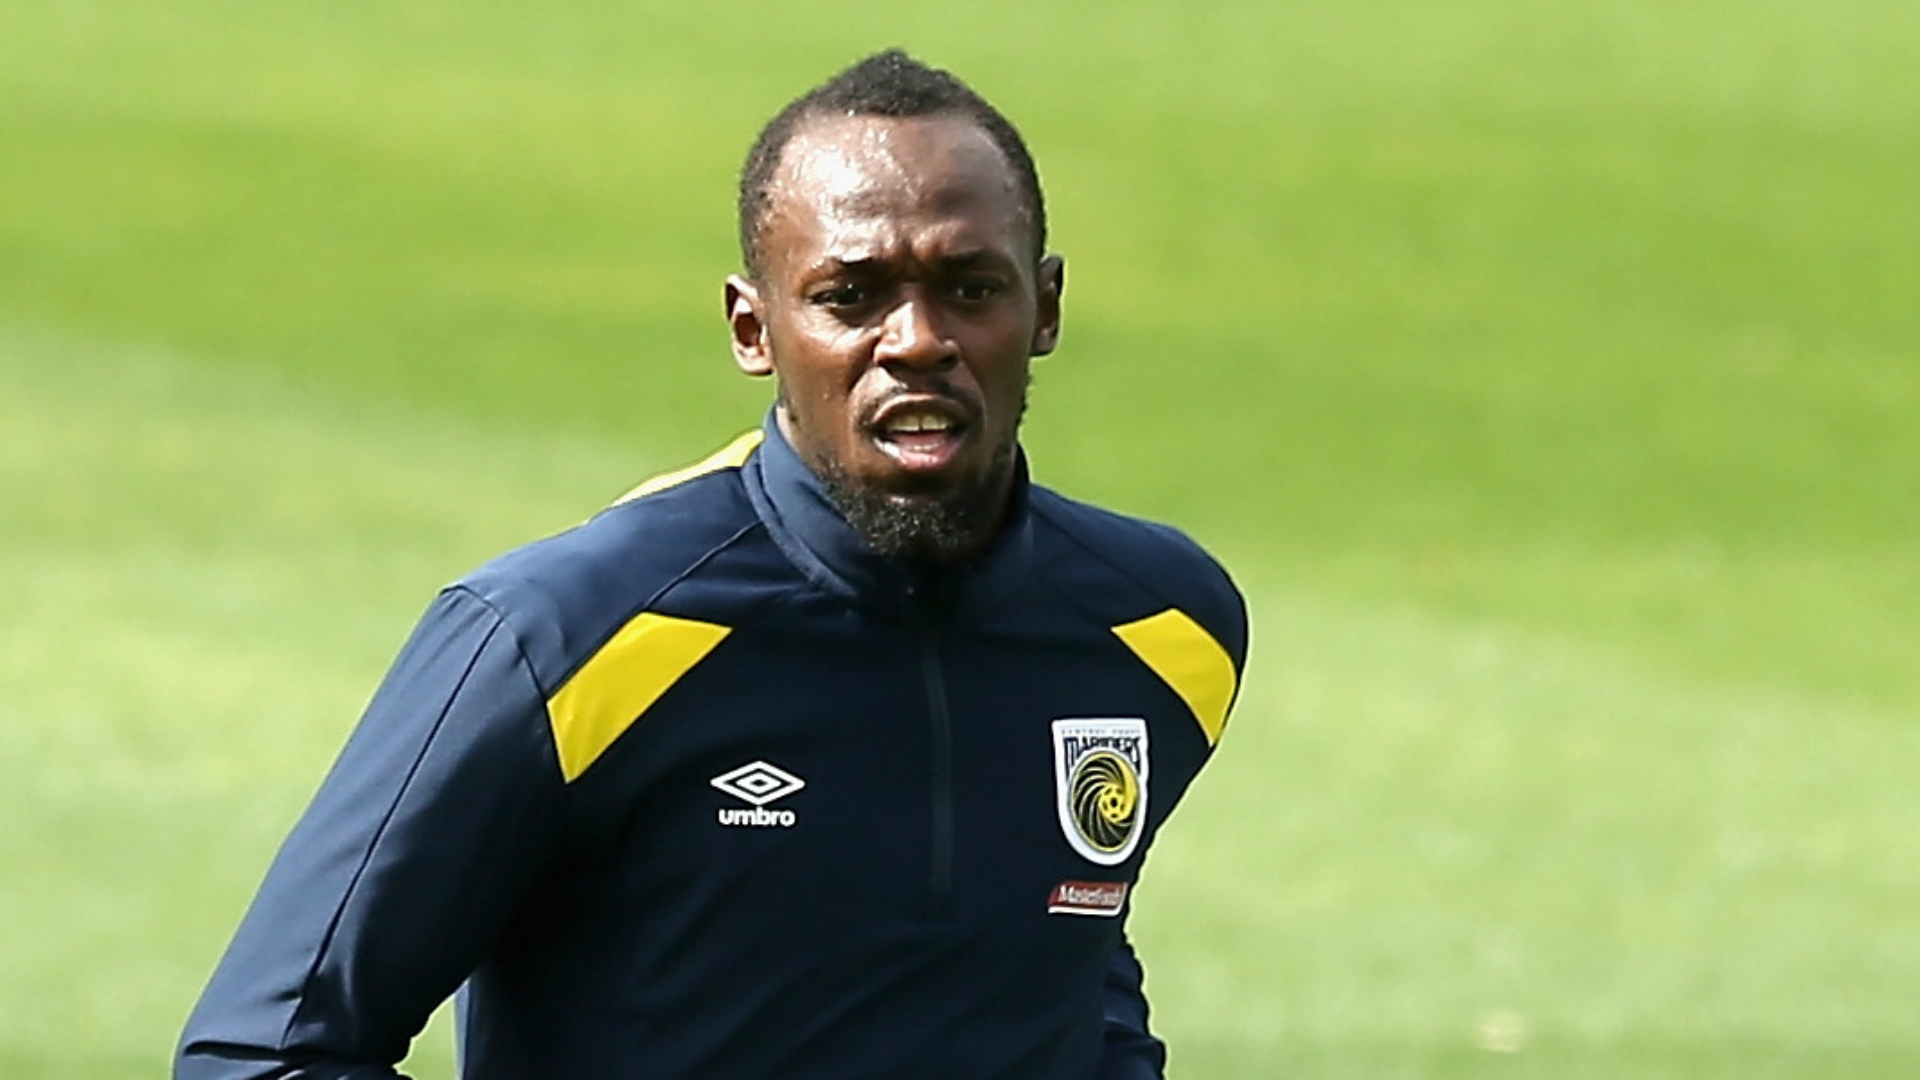 Usain Bolt makes professional football debut with Central Coast Mariners cameo